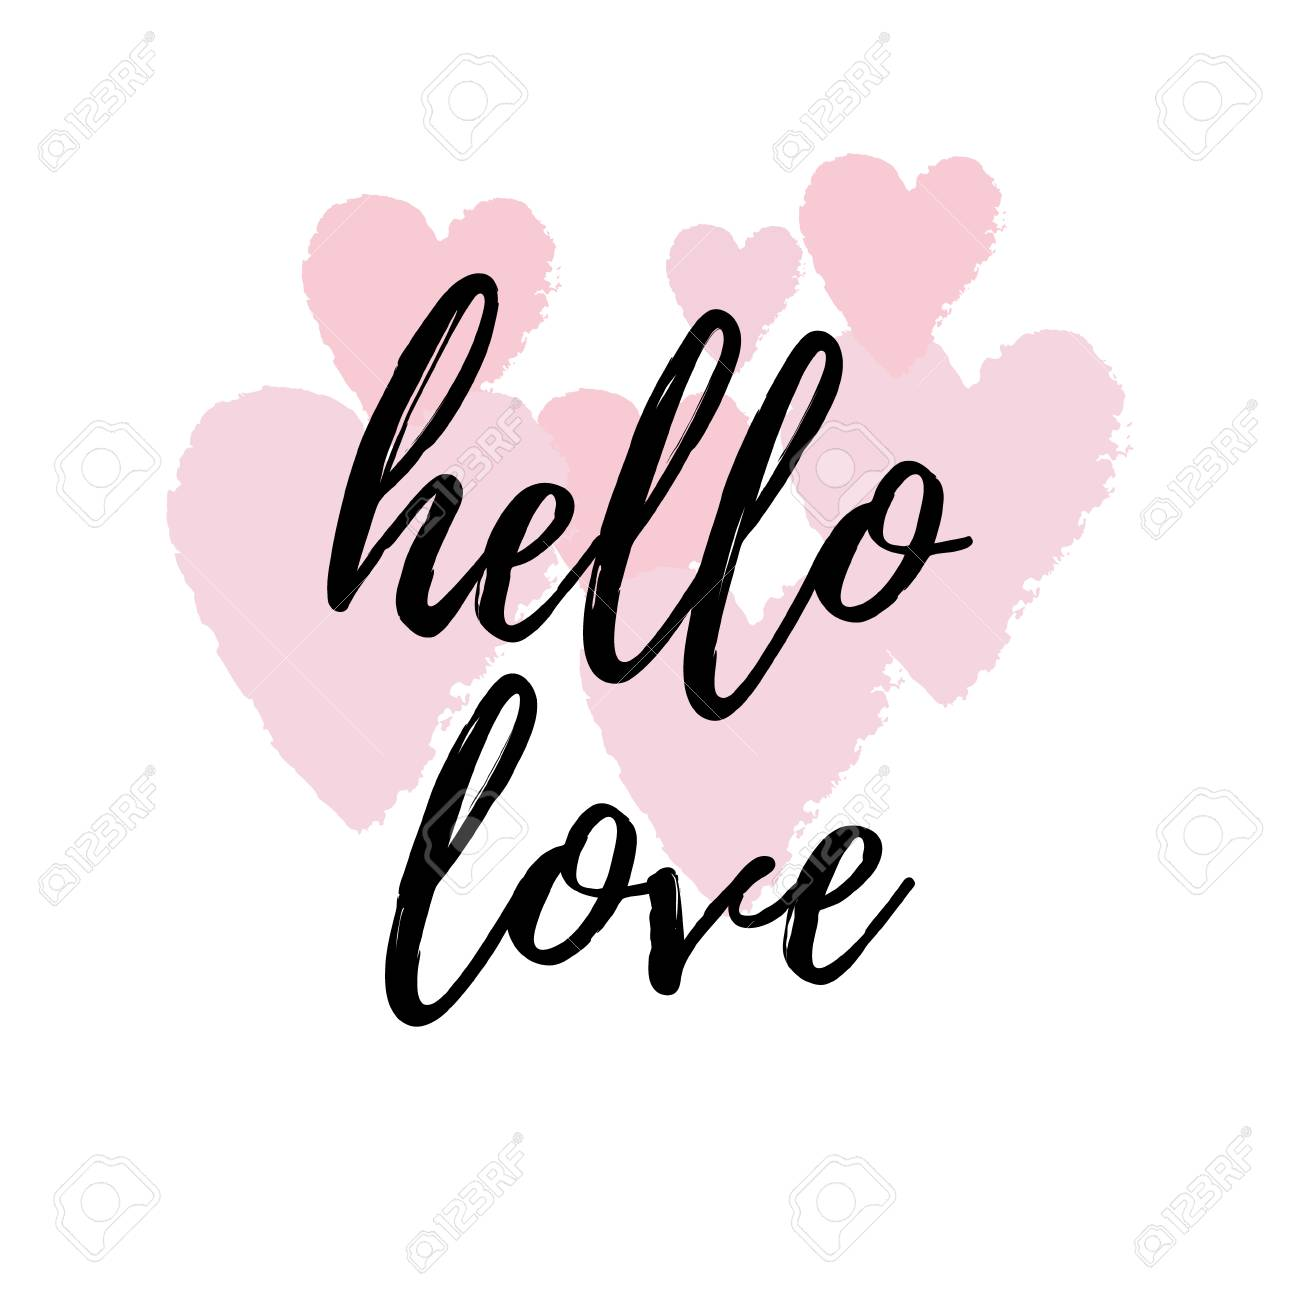 Wonderful Hello Love Inspirational Quote Greeting Card, Poster, Cover. Vector Hand  Lettering With Pink Design Inspirations